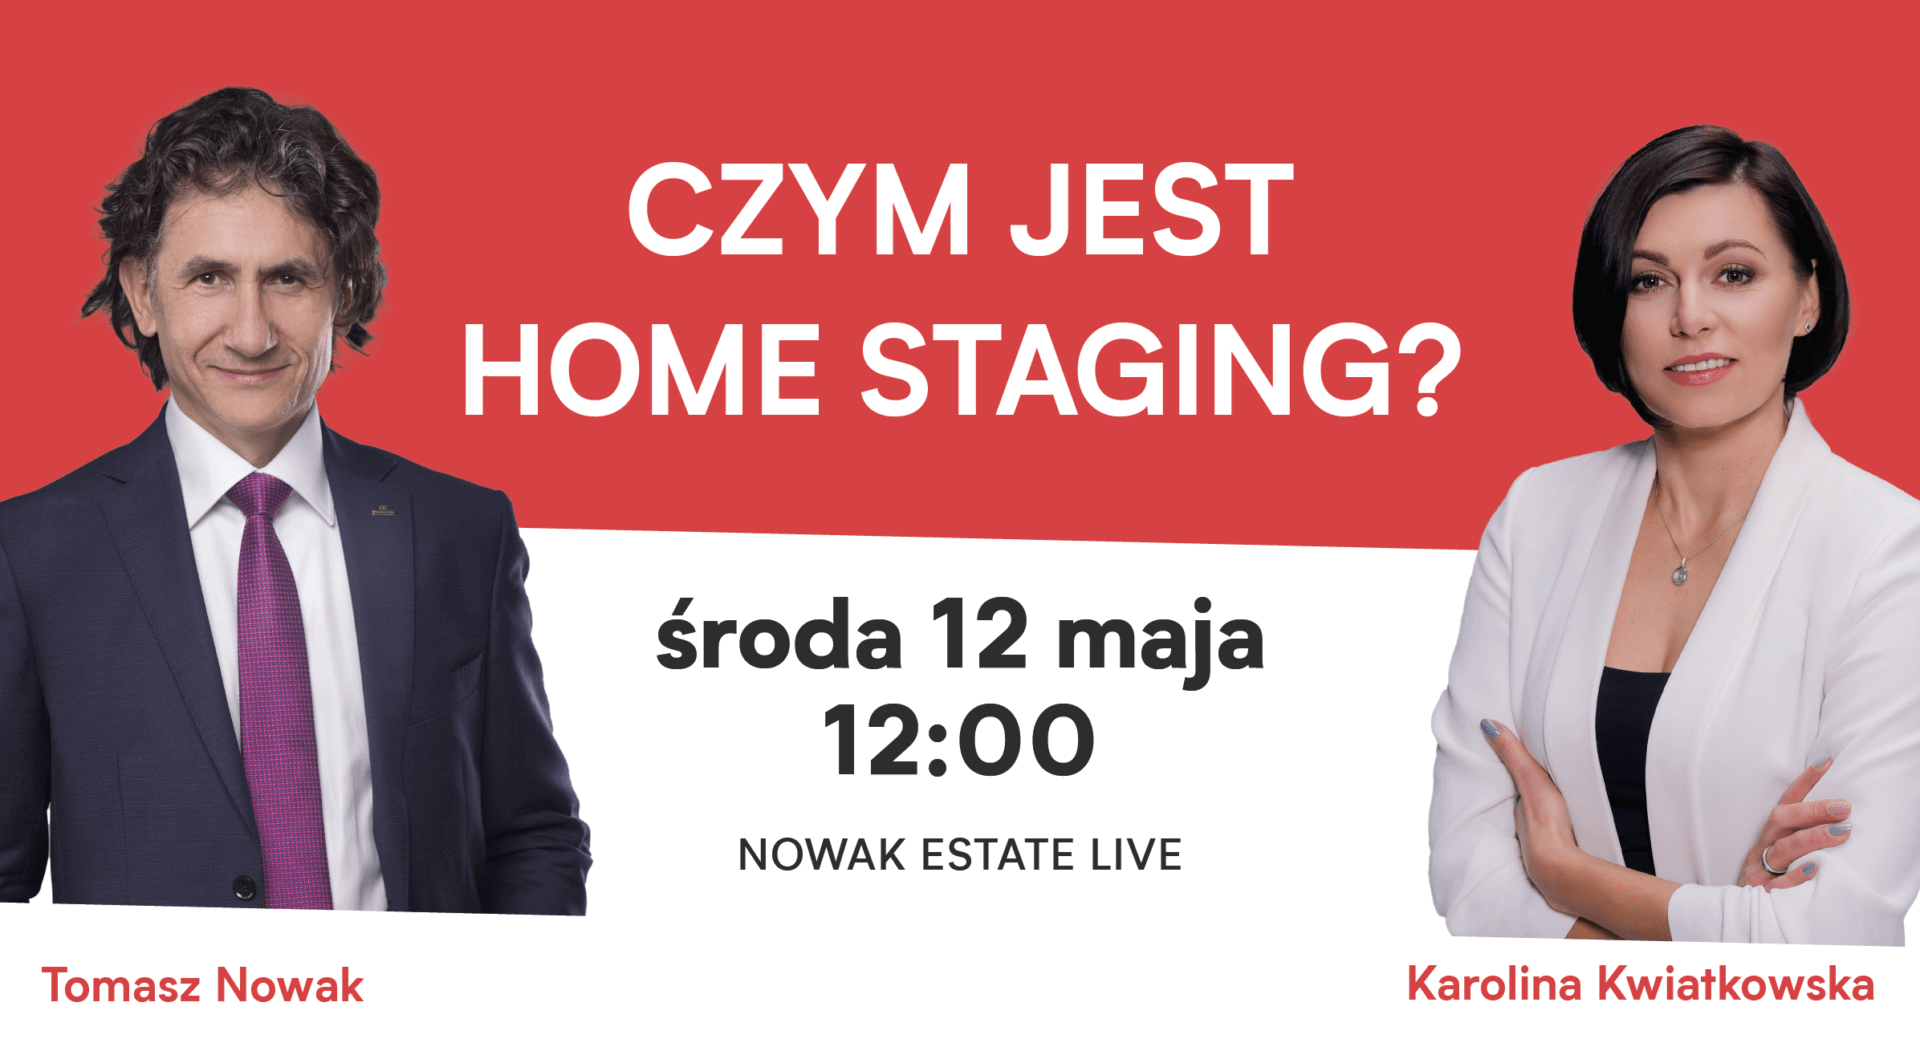 live home staging Obszar roboczy 1